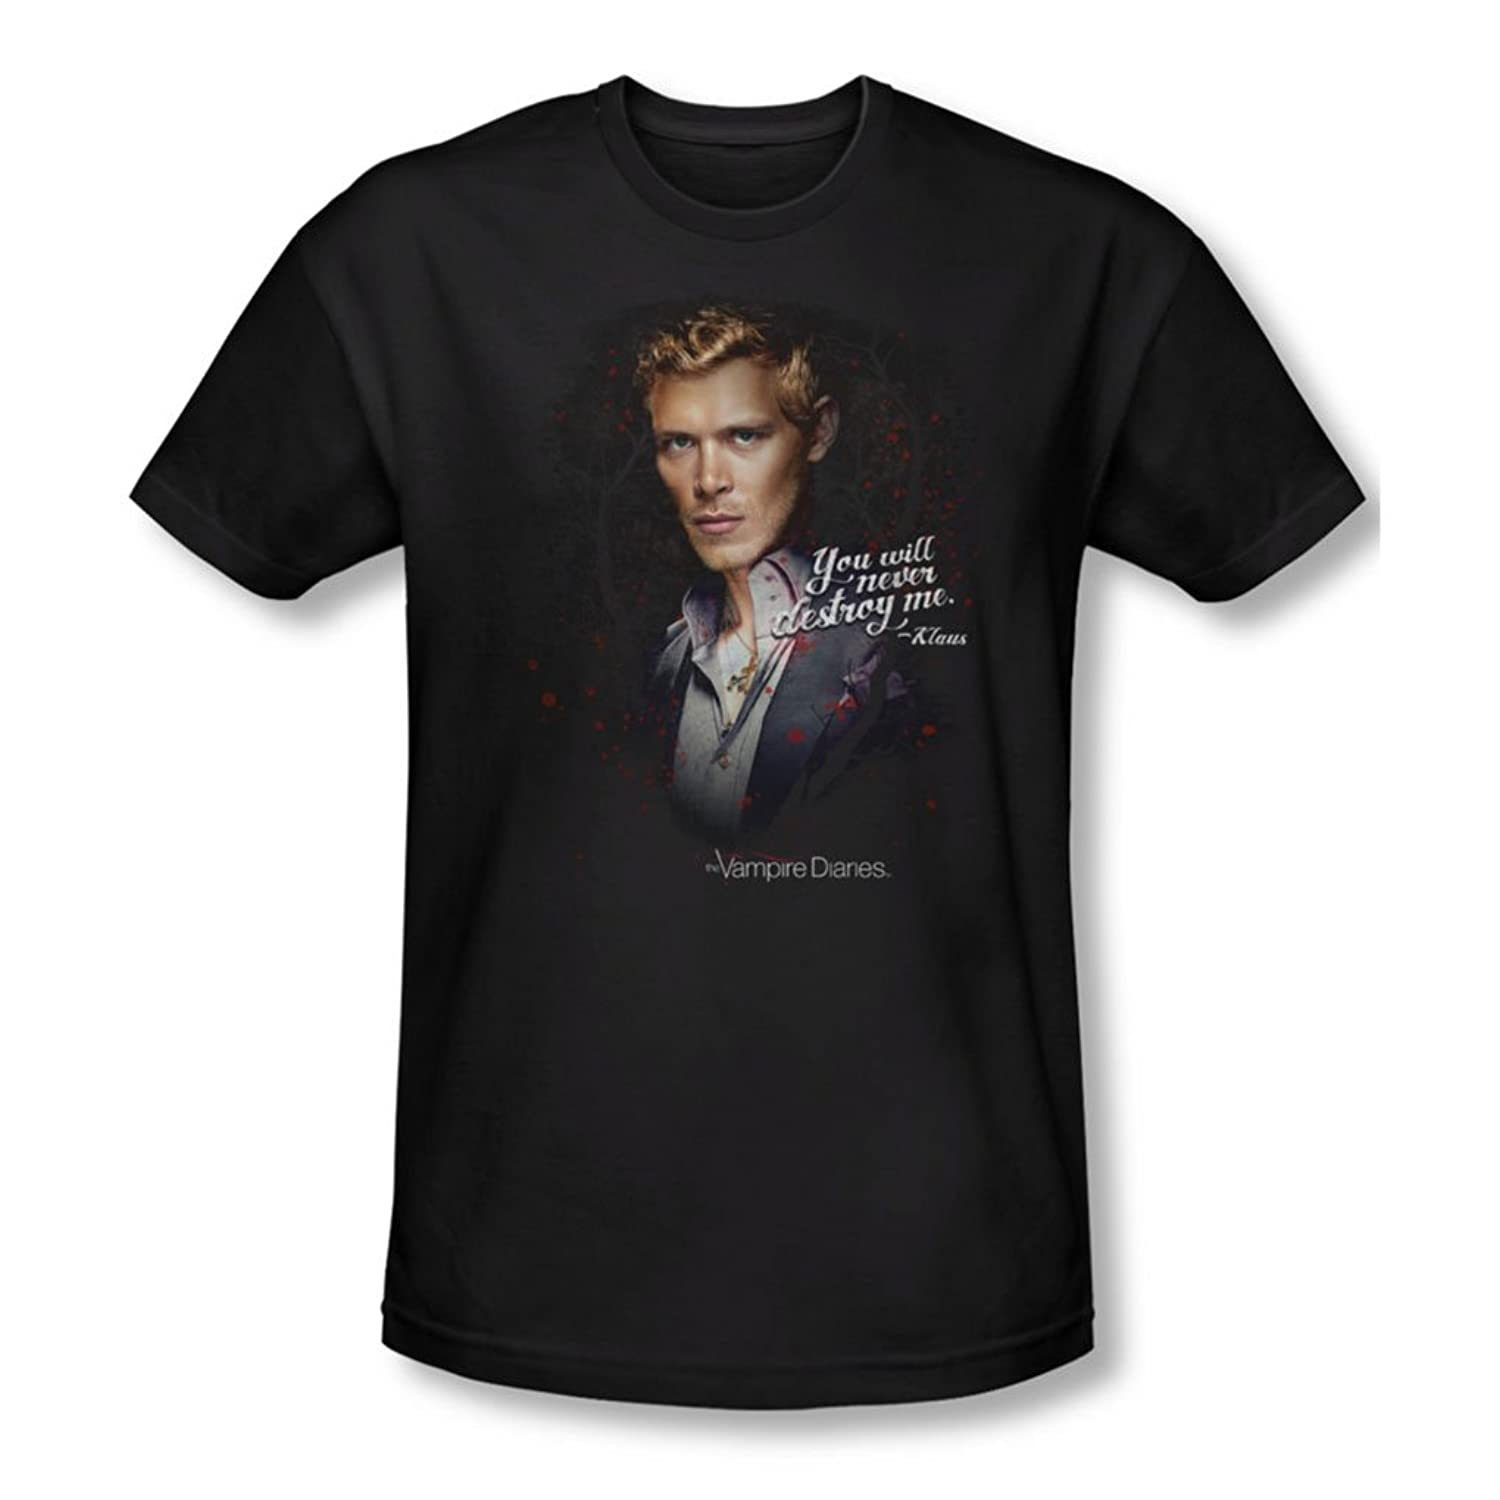 Vampire Diaries - Mens Never Destroy T-Shirt In Black